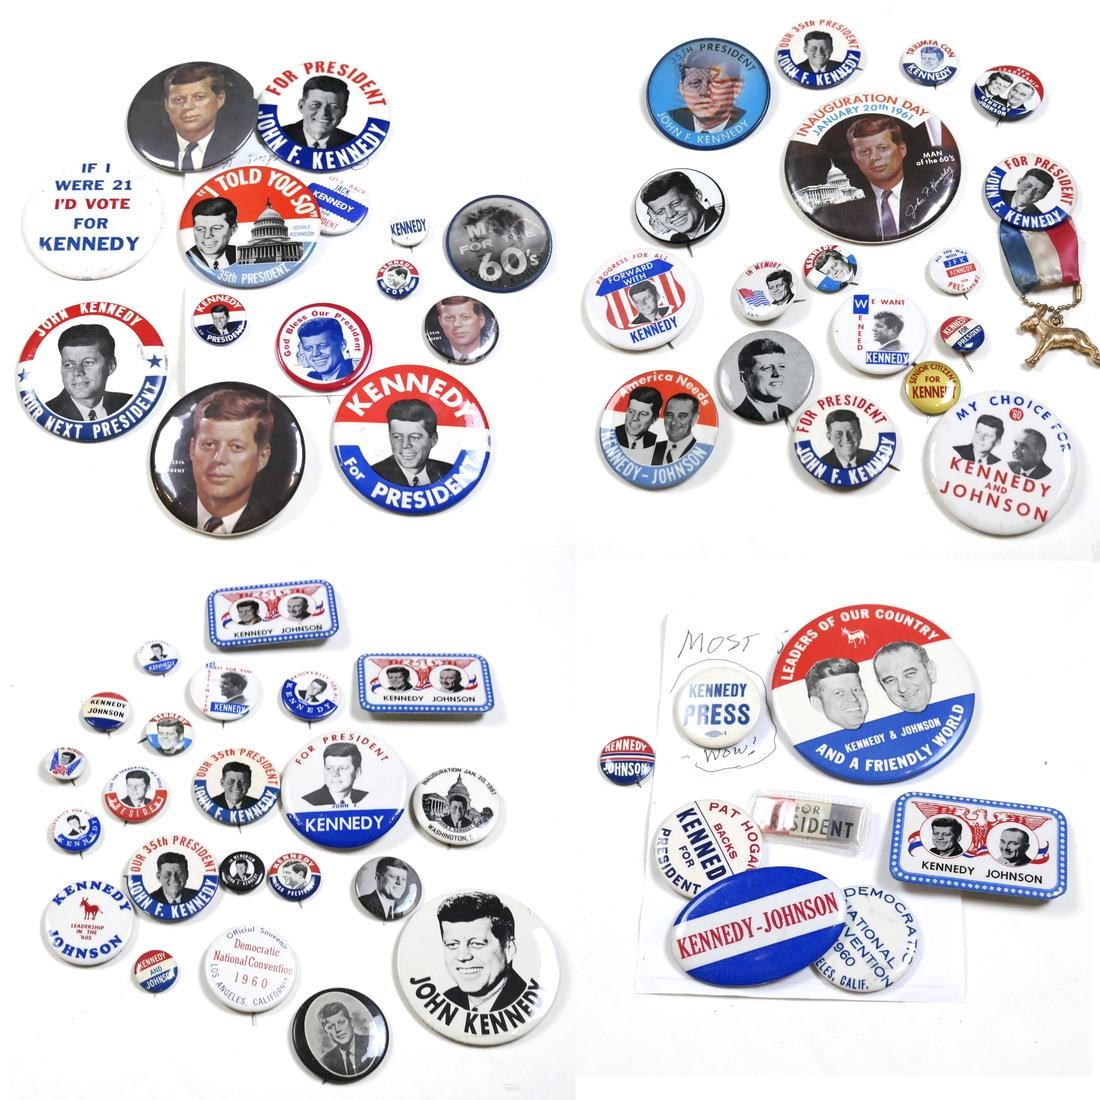 LARGE GROUP OF 1960 KENNEDY & JOHNSON CAMPAIGN BUTTONS